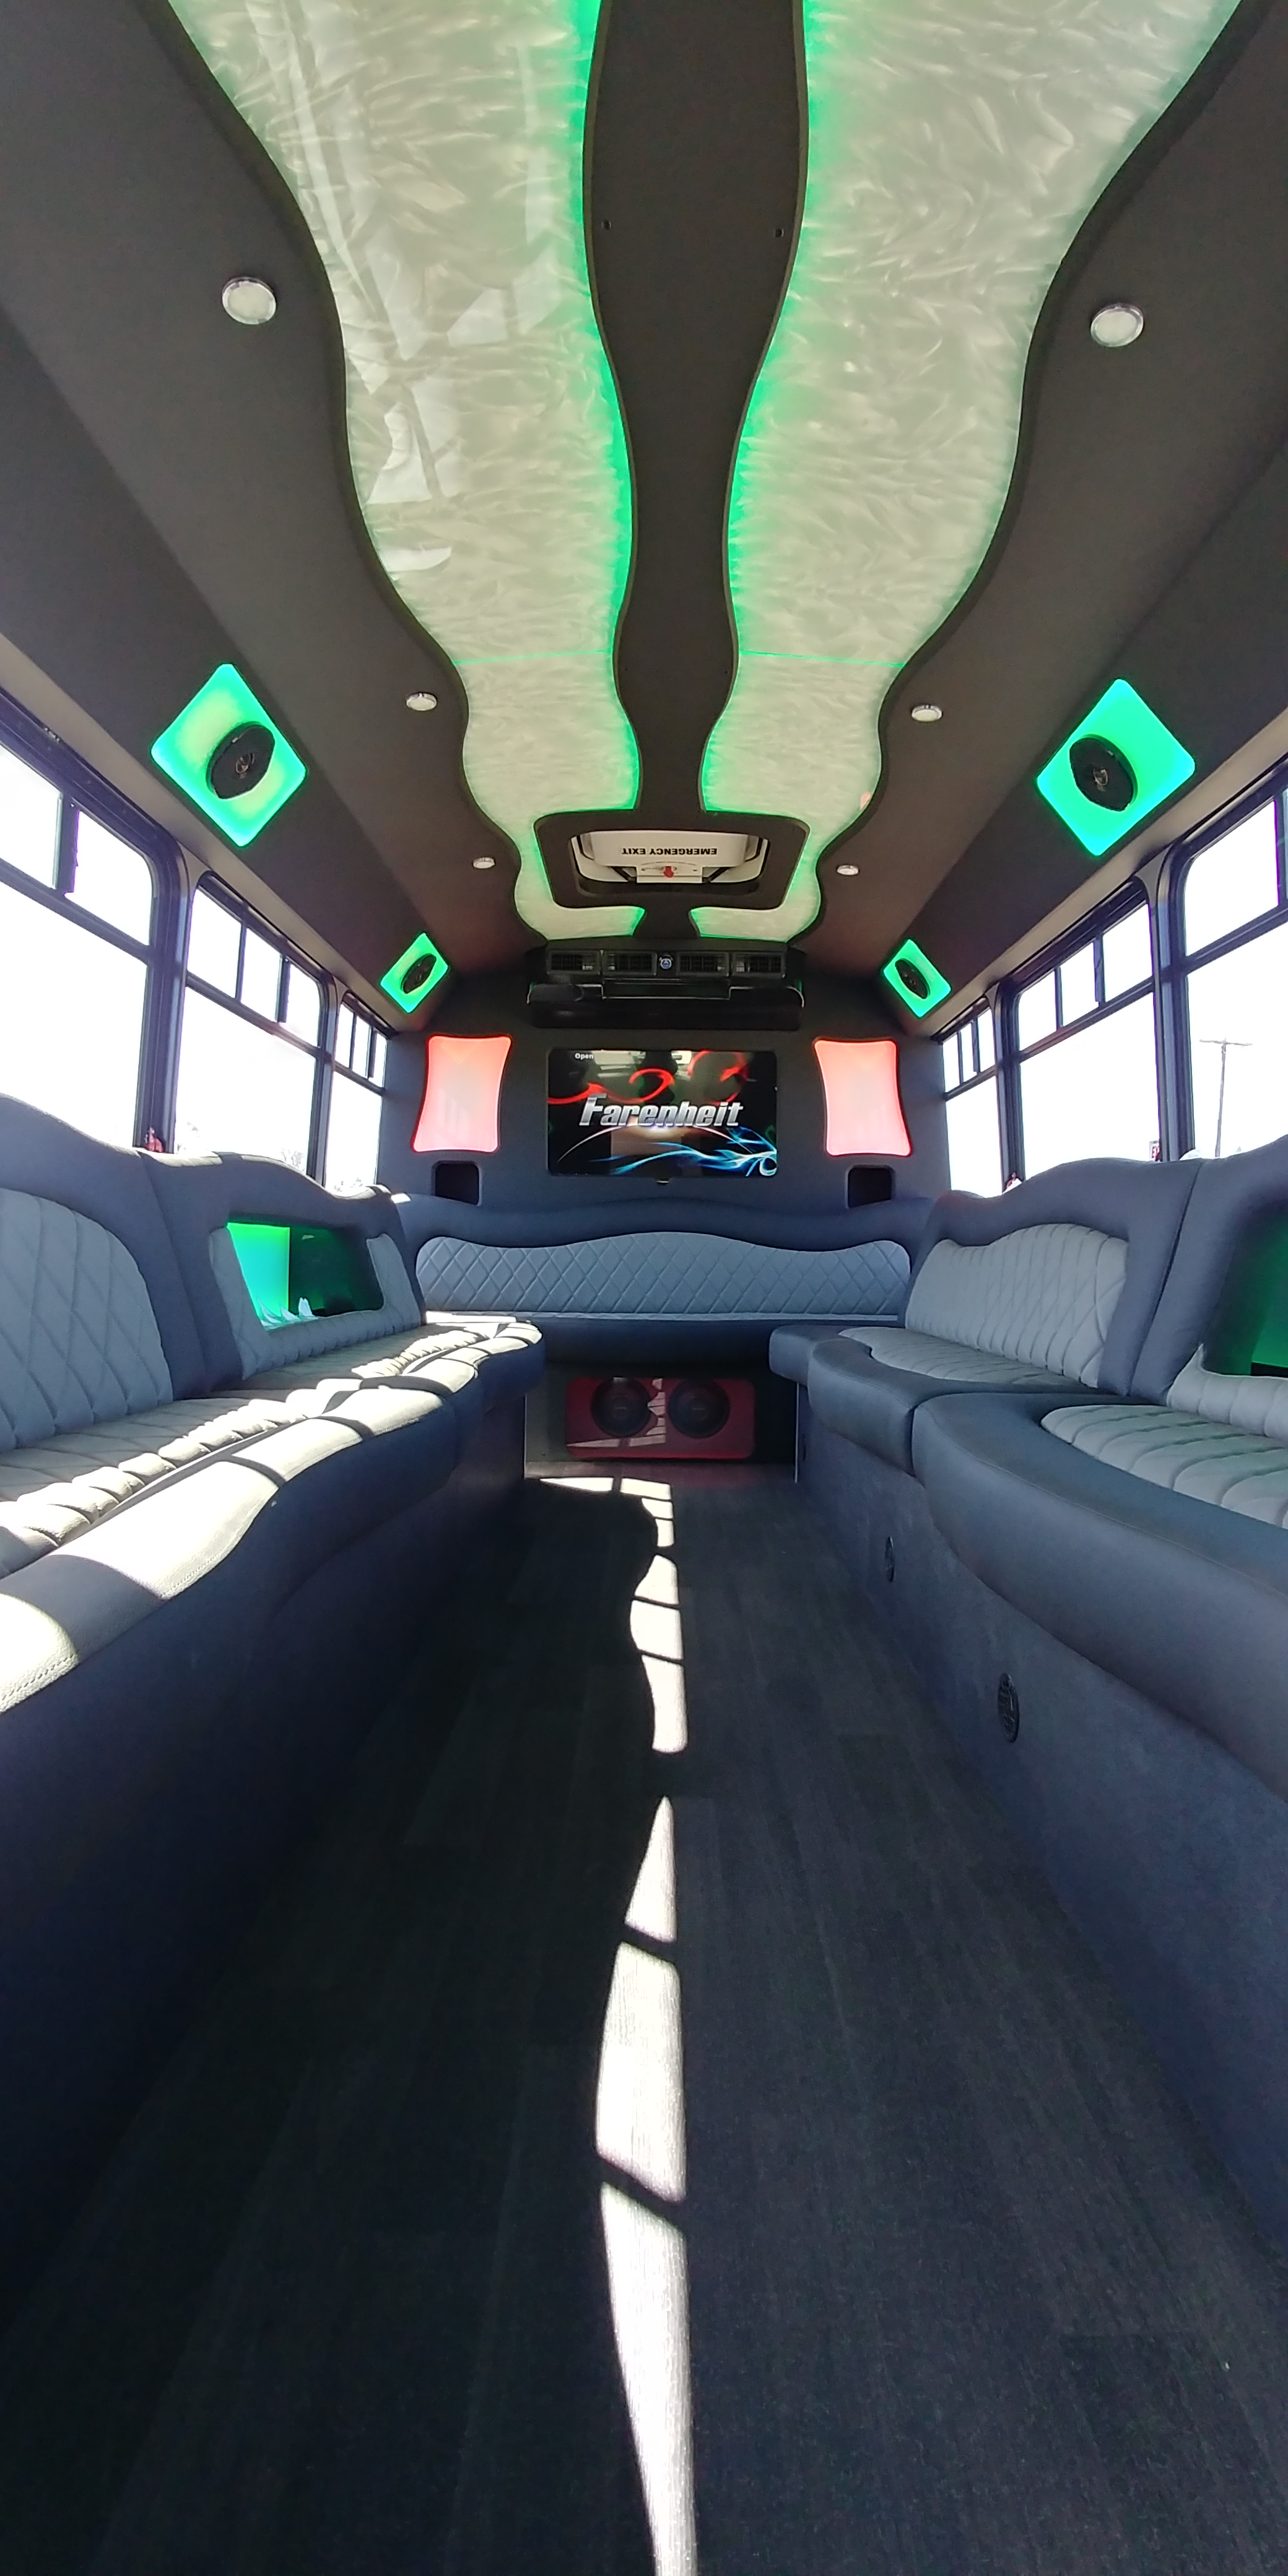 18 Passenger Luxury Limo Bus Interior 4